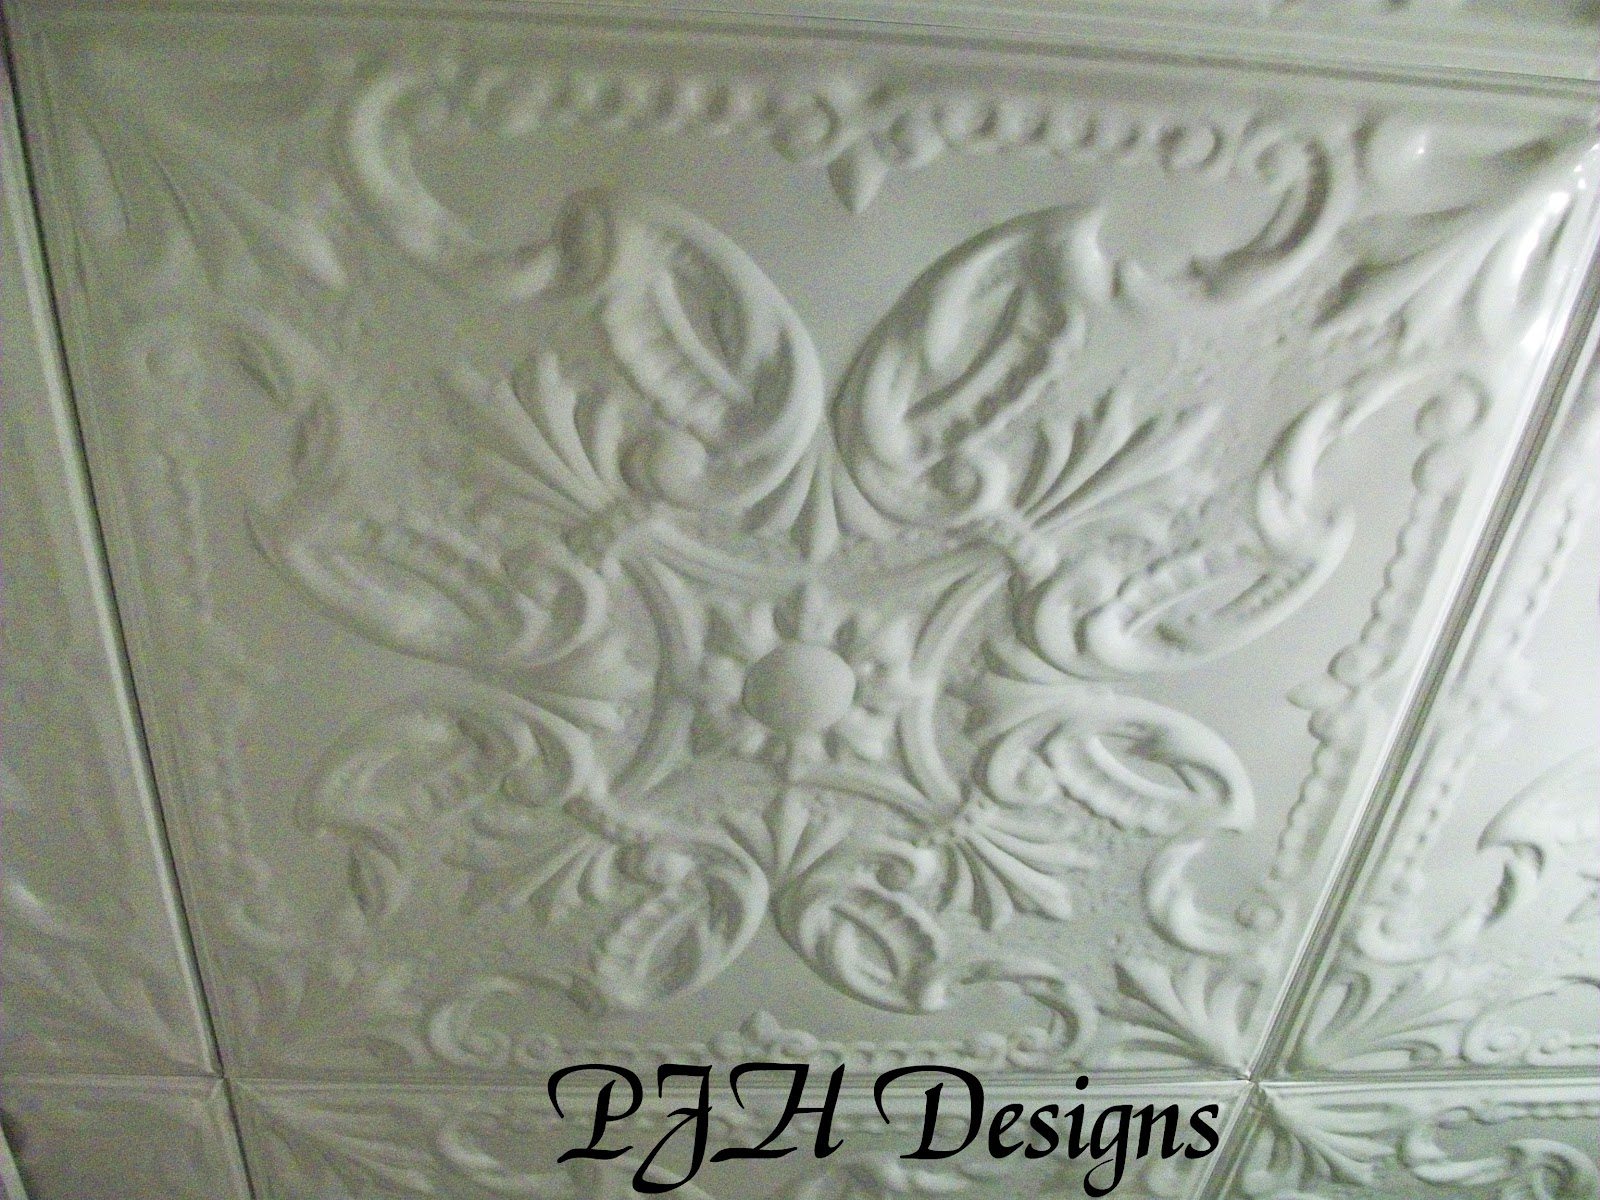 Pjh designs hand painted antique furniture kitchen remodel tin kitchen remodel tin ceiling tiles dailygadgetfo Choice Image